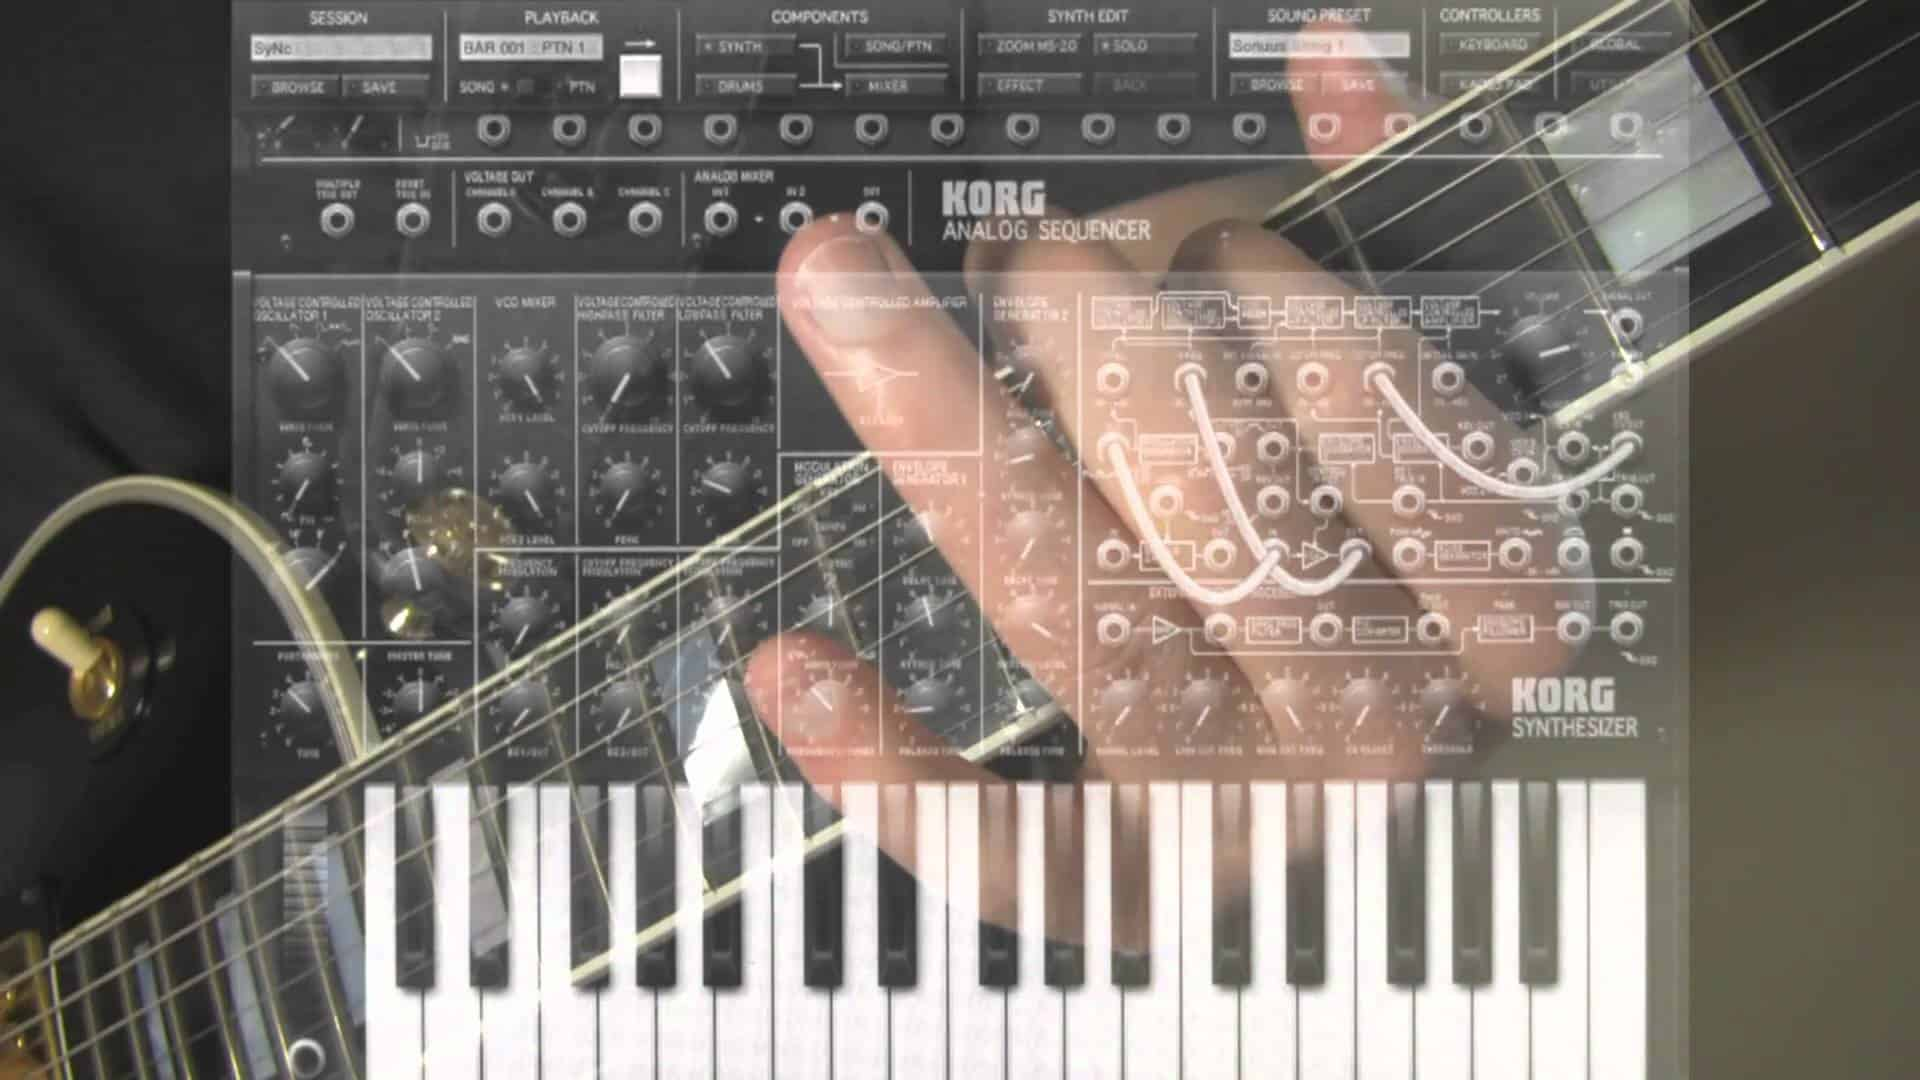 Guitar to MIDI connection – Use Your Guitar Like A Synth